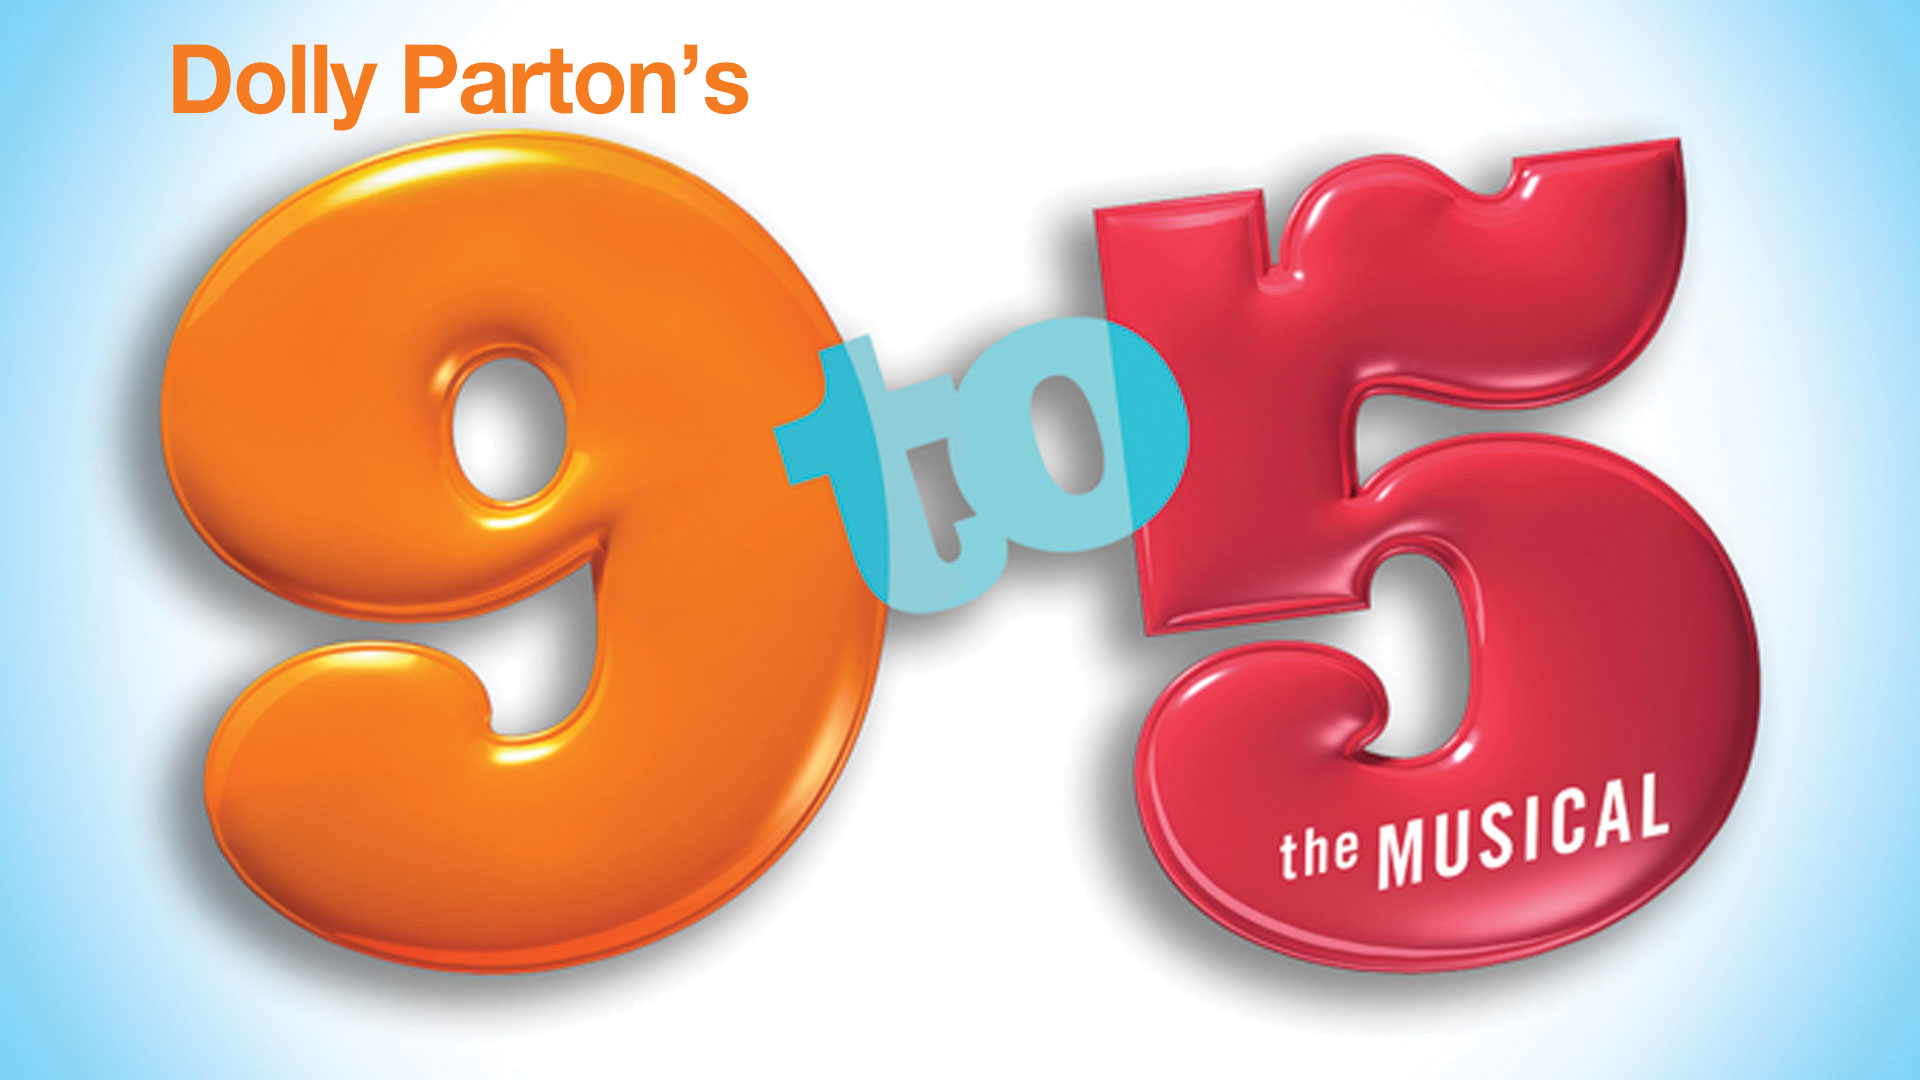 Dolly Parton's 9 to 5, the Musical